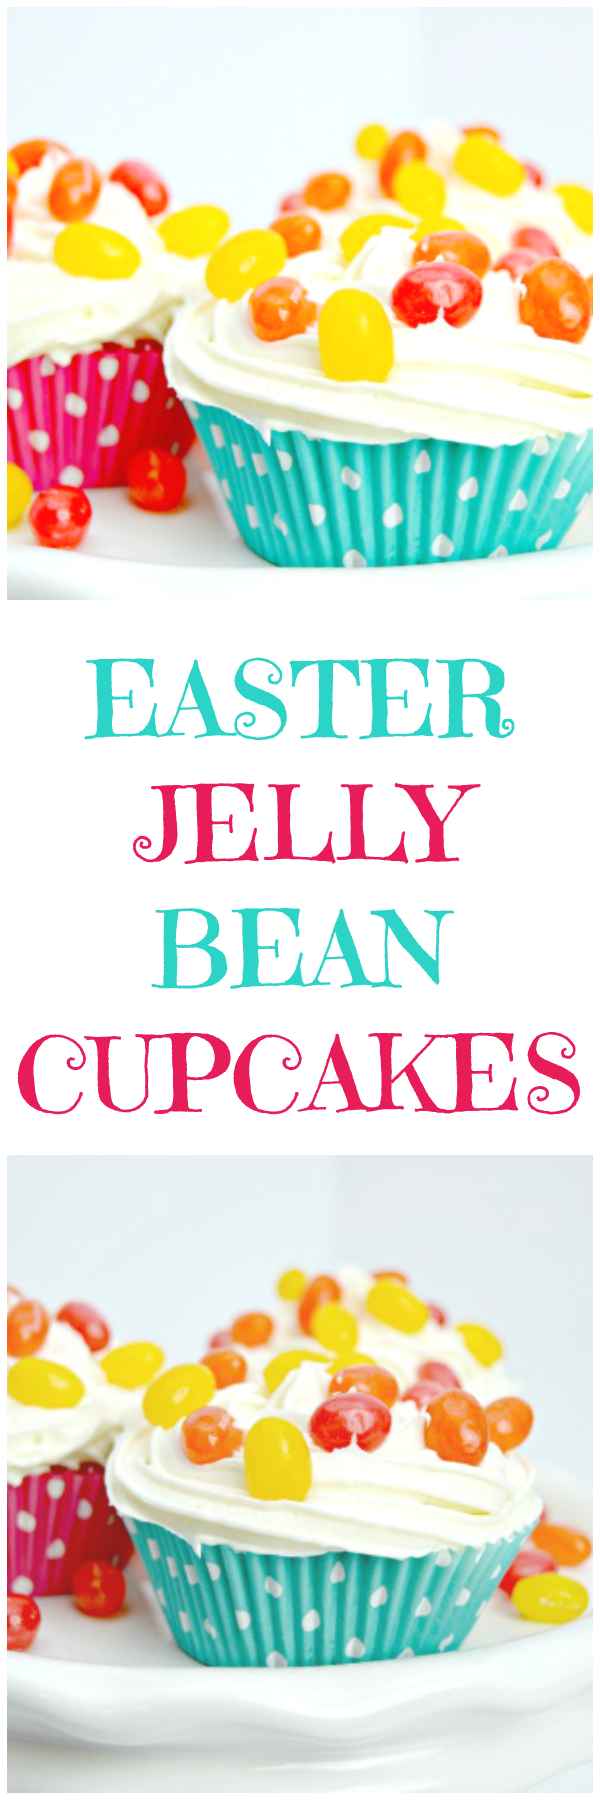 Easter Jelly Bean Cupcakes